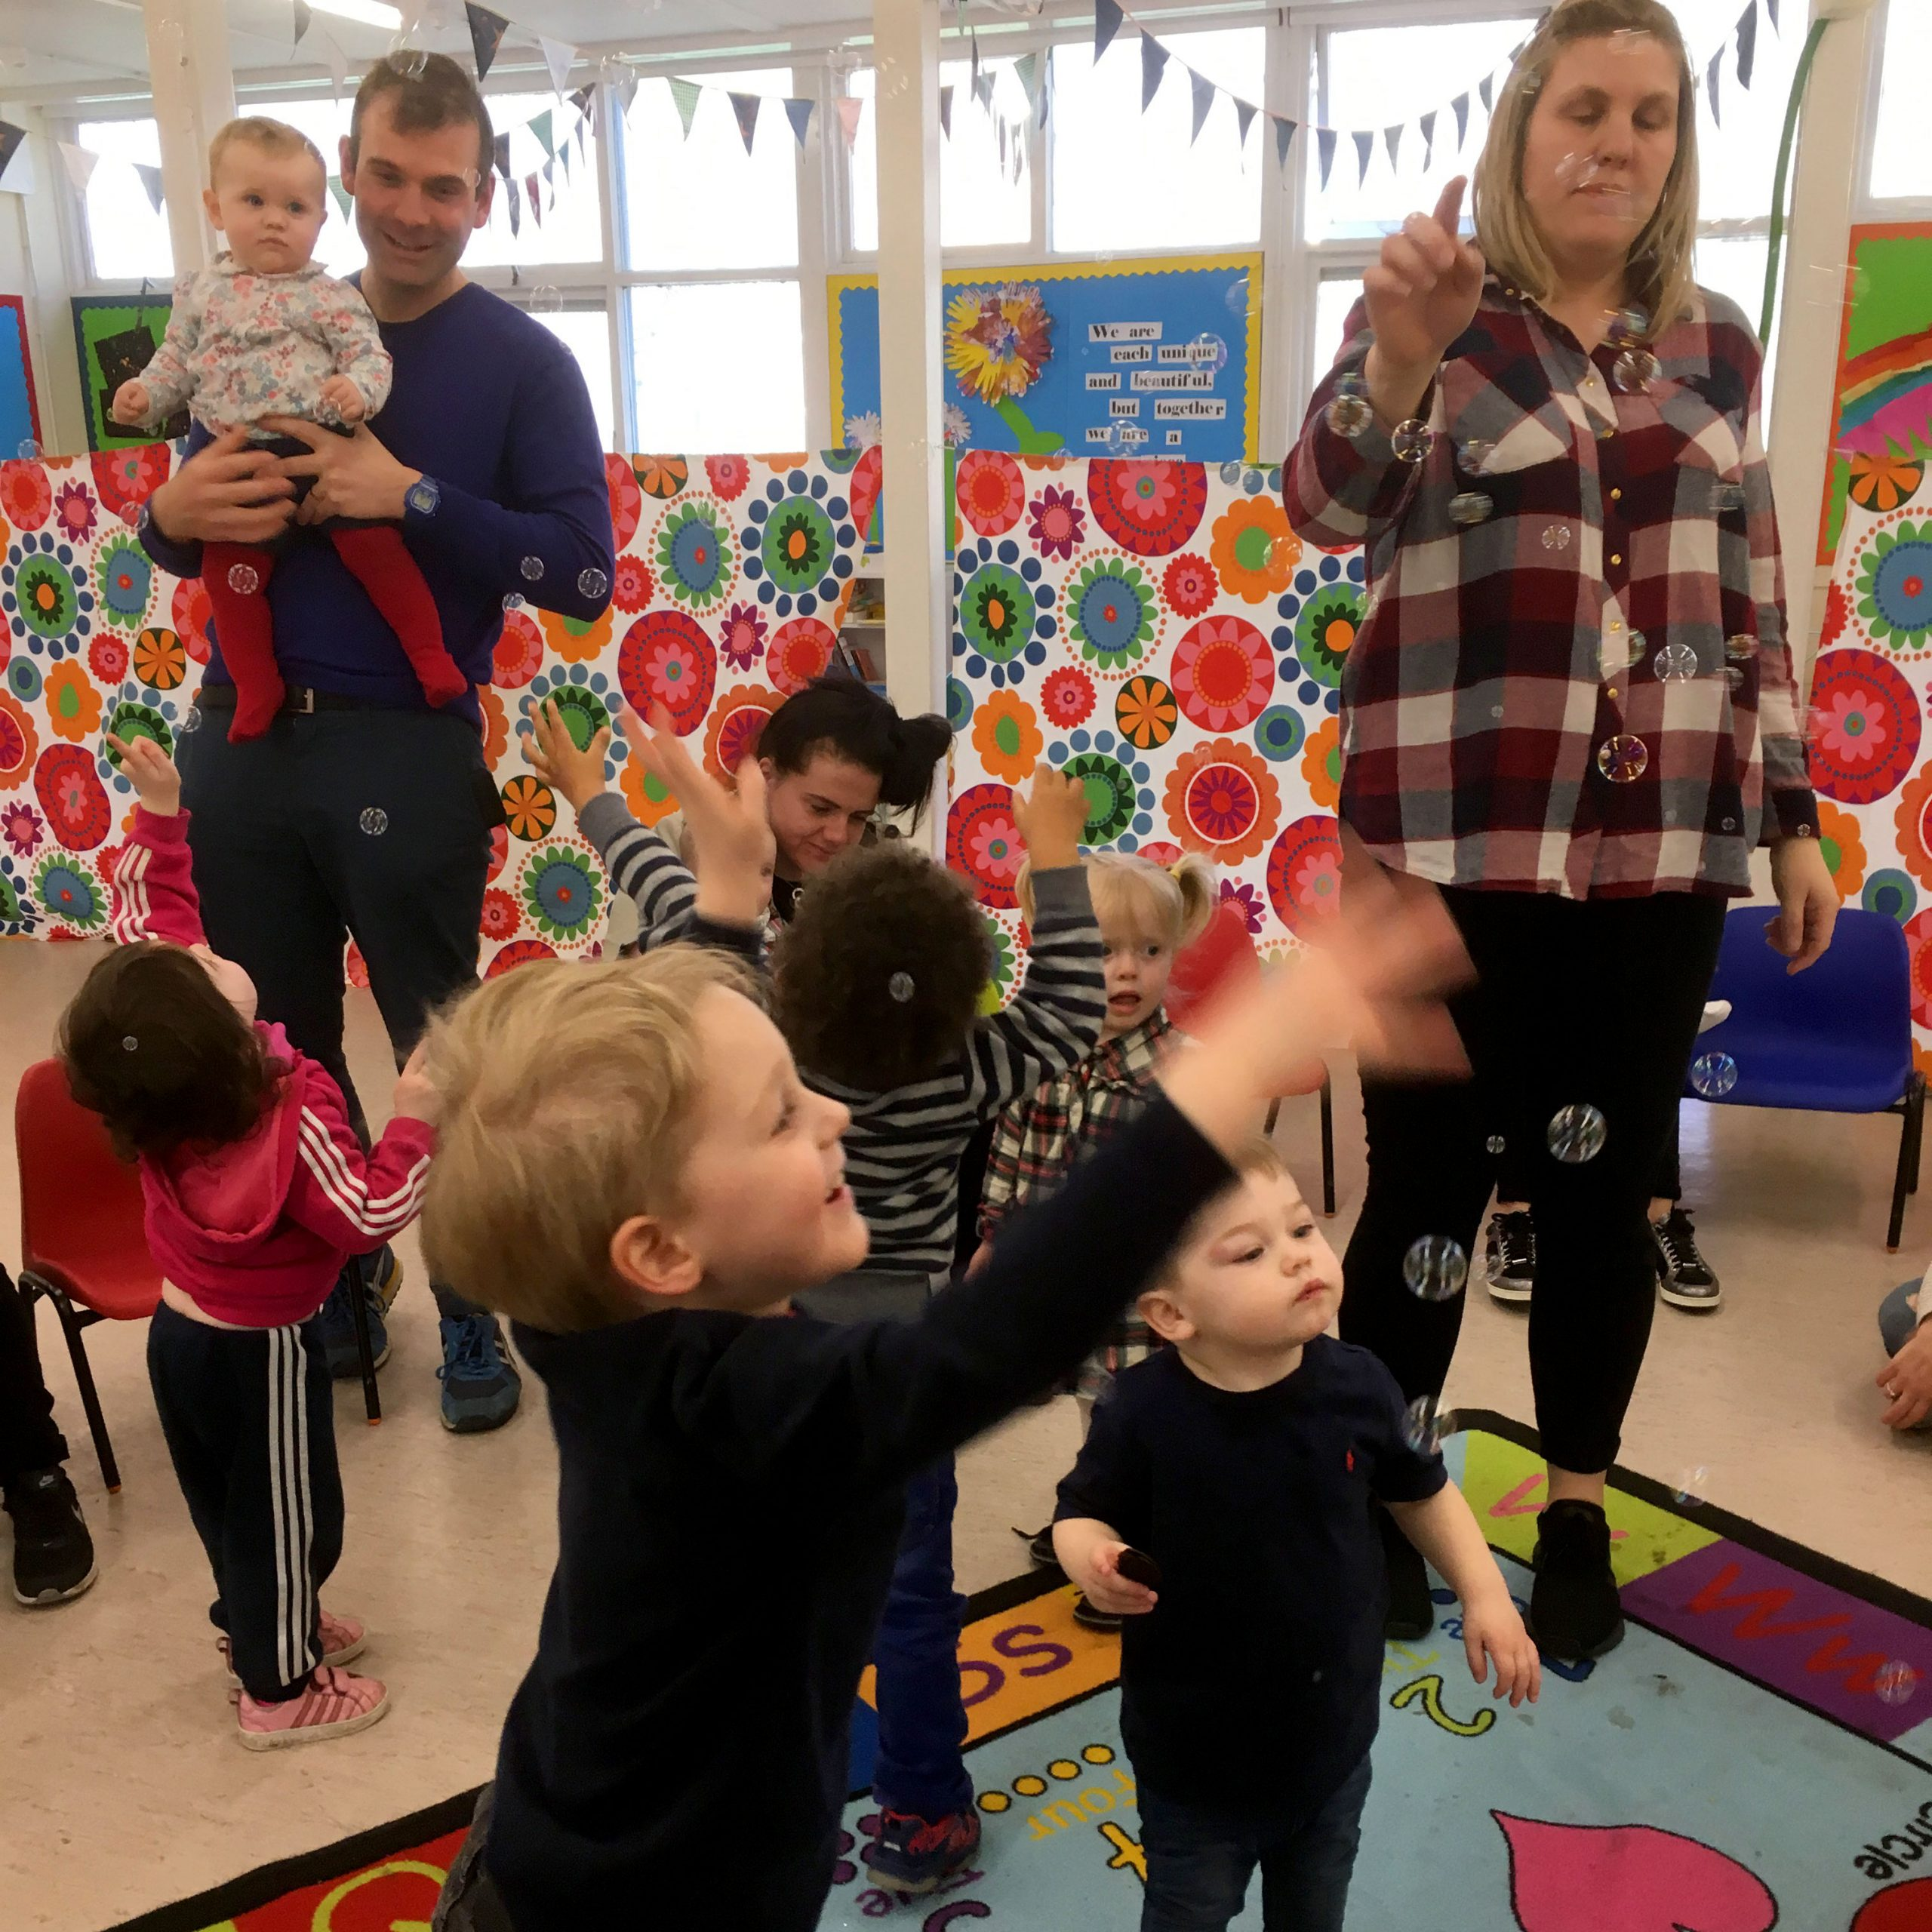 Adults and children dance around a colourful room catching bubbles. The children reach up in the air and a Dad is holding a baby to see the fun.